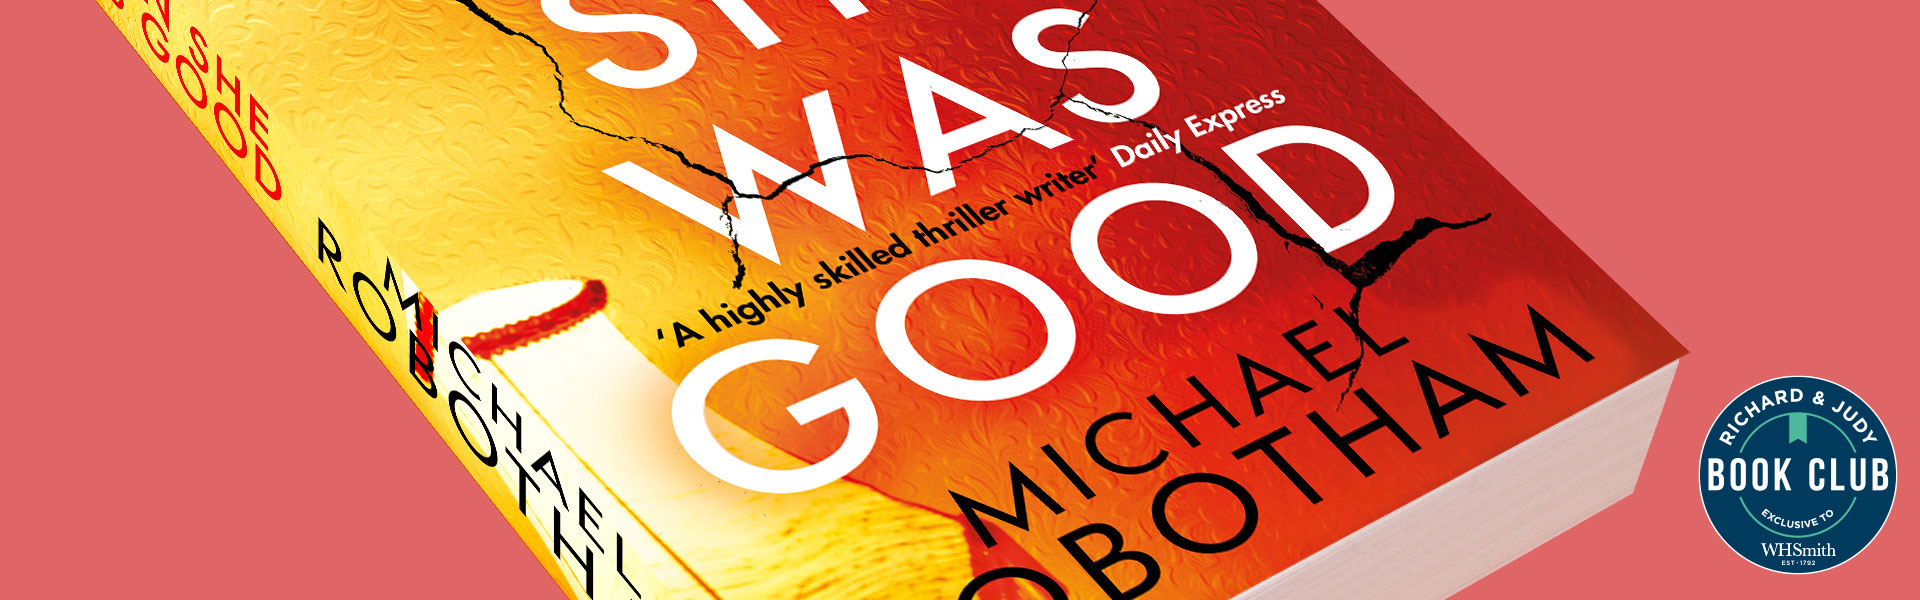 Richard & Judy Introduce When She Was Good by Michael Robotham